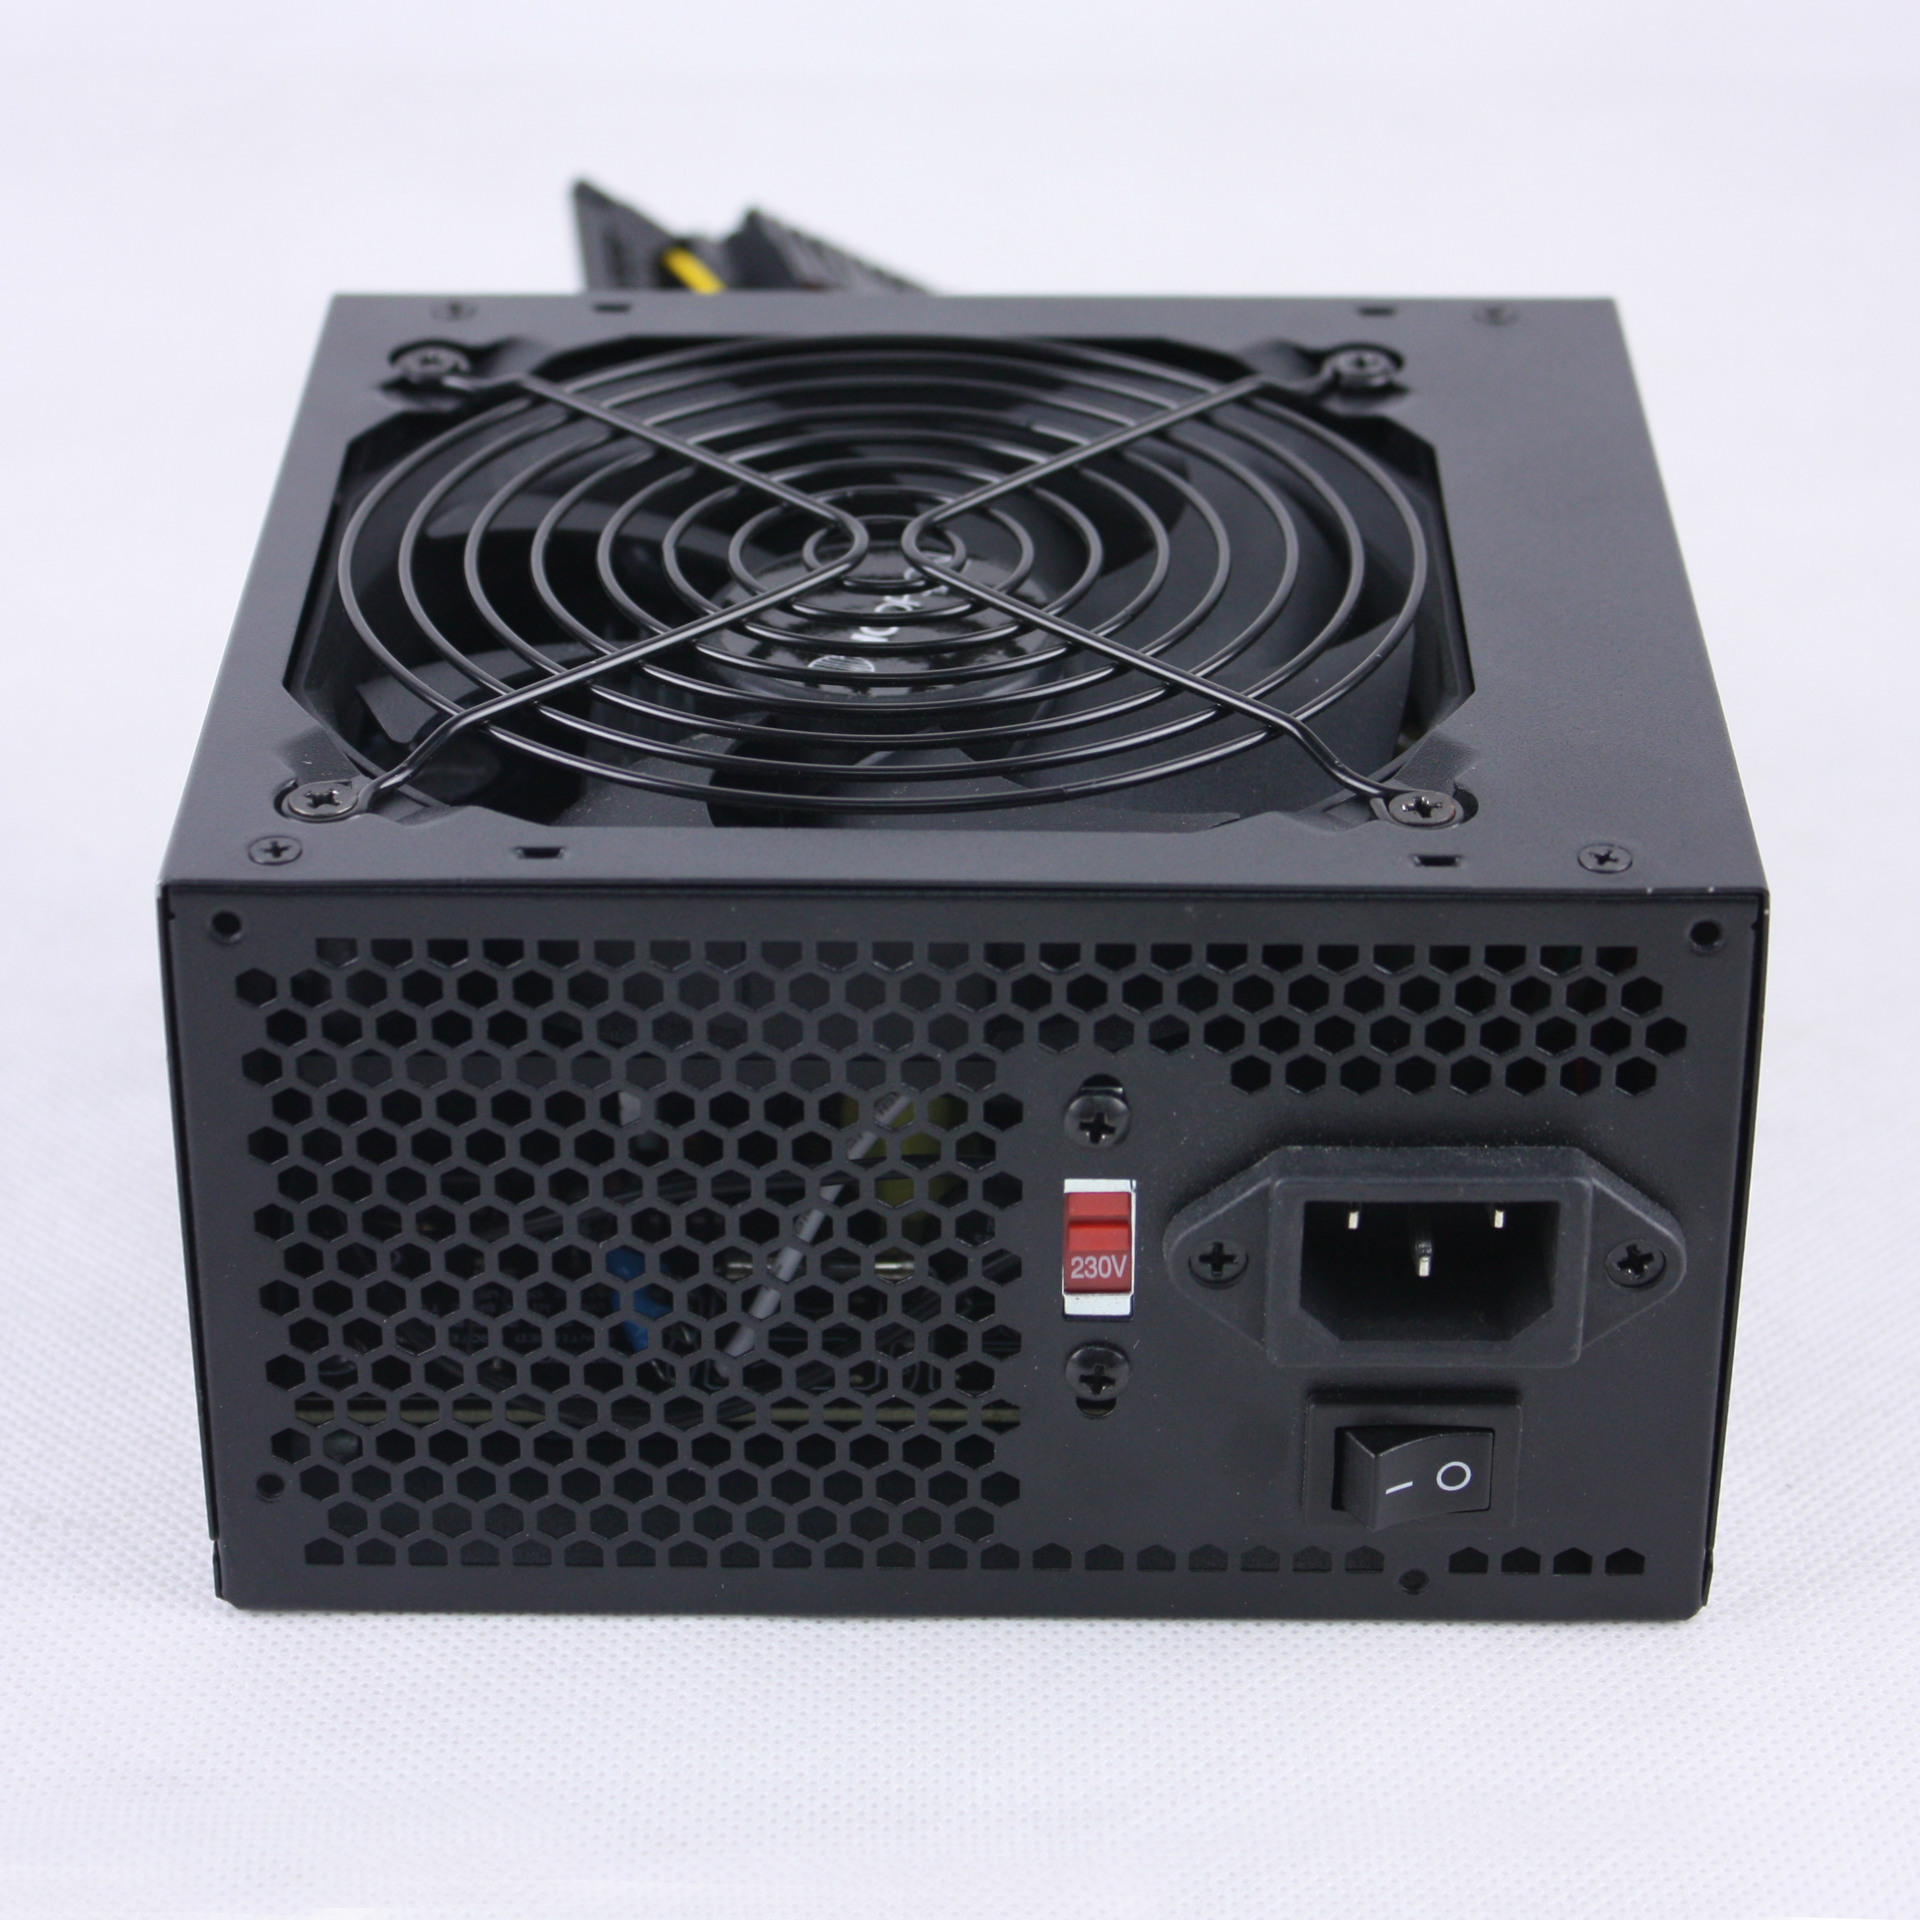 Personlized Products Psu 1400w -